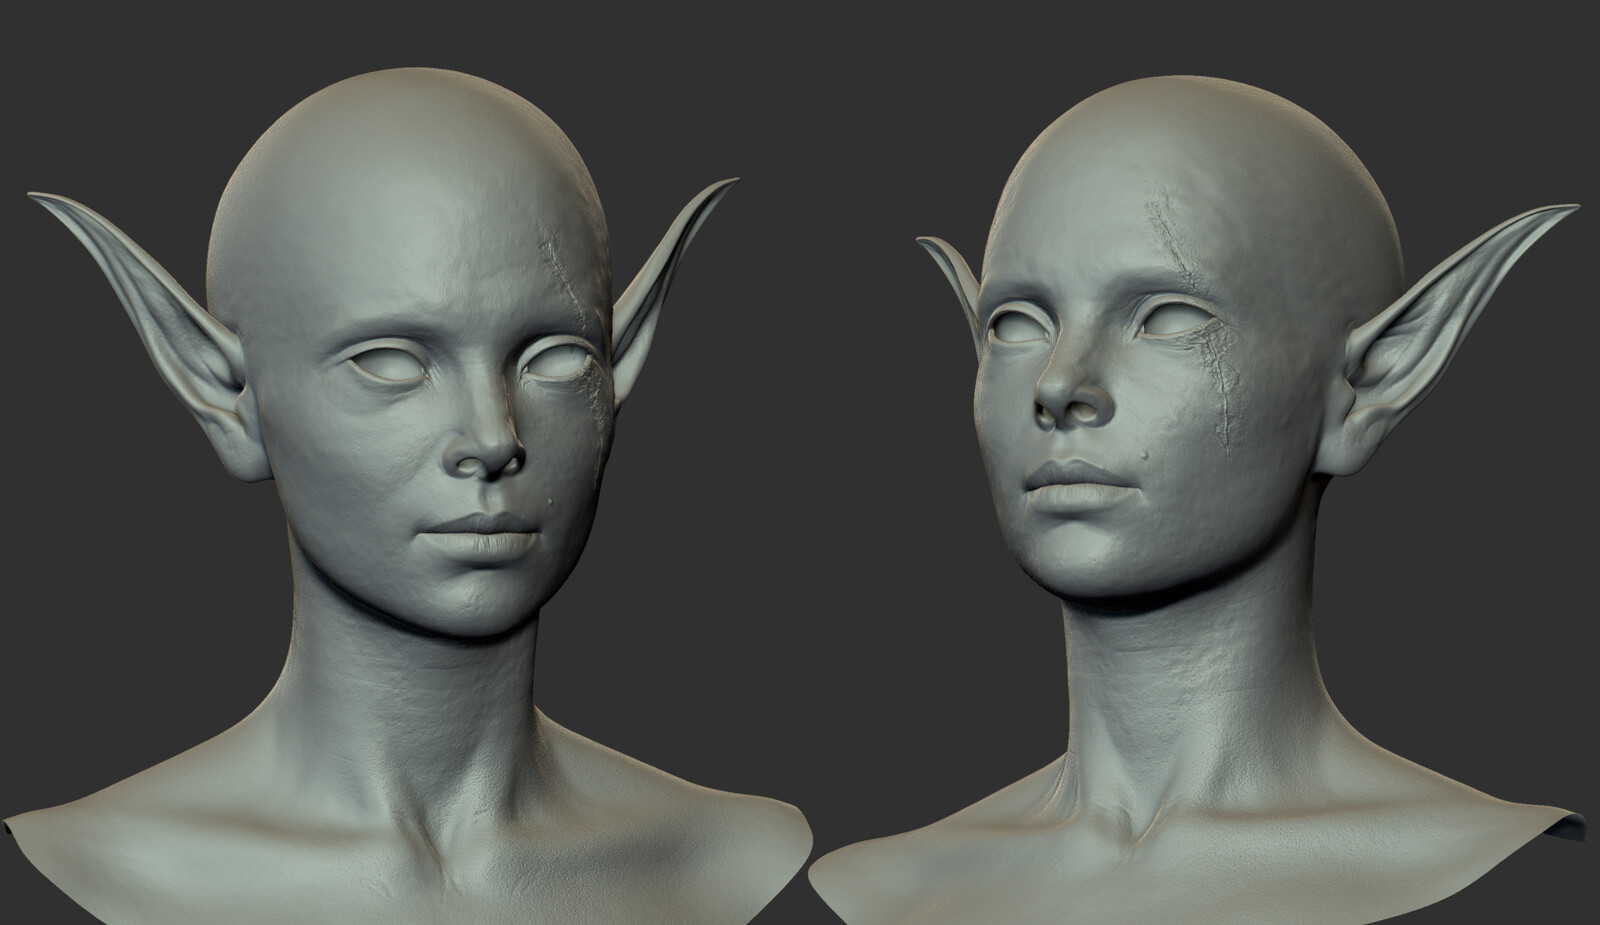 Zbrush model preview